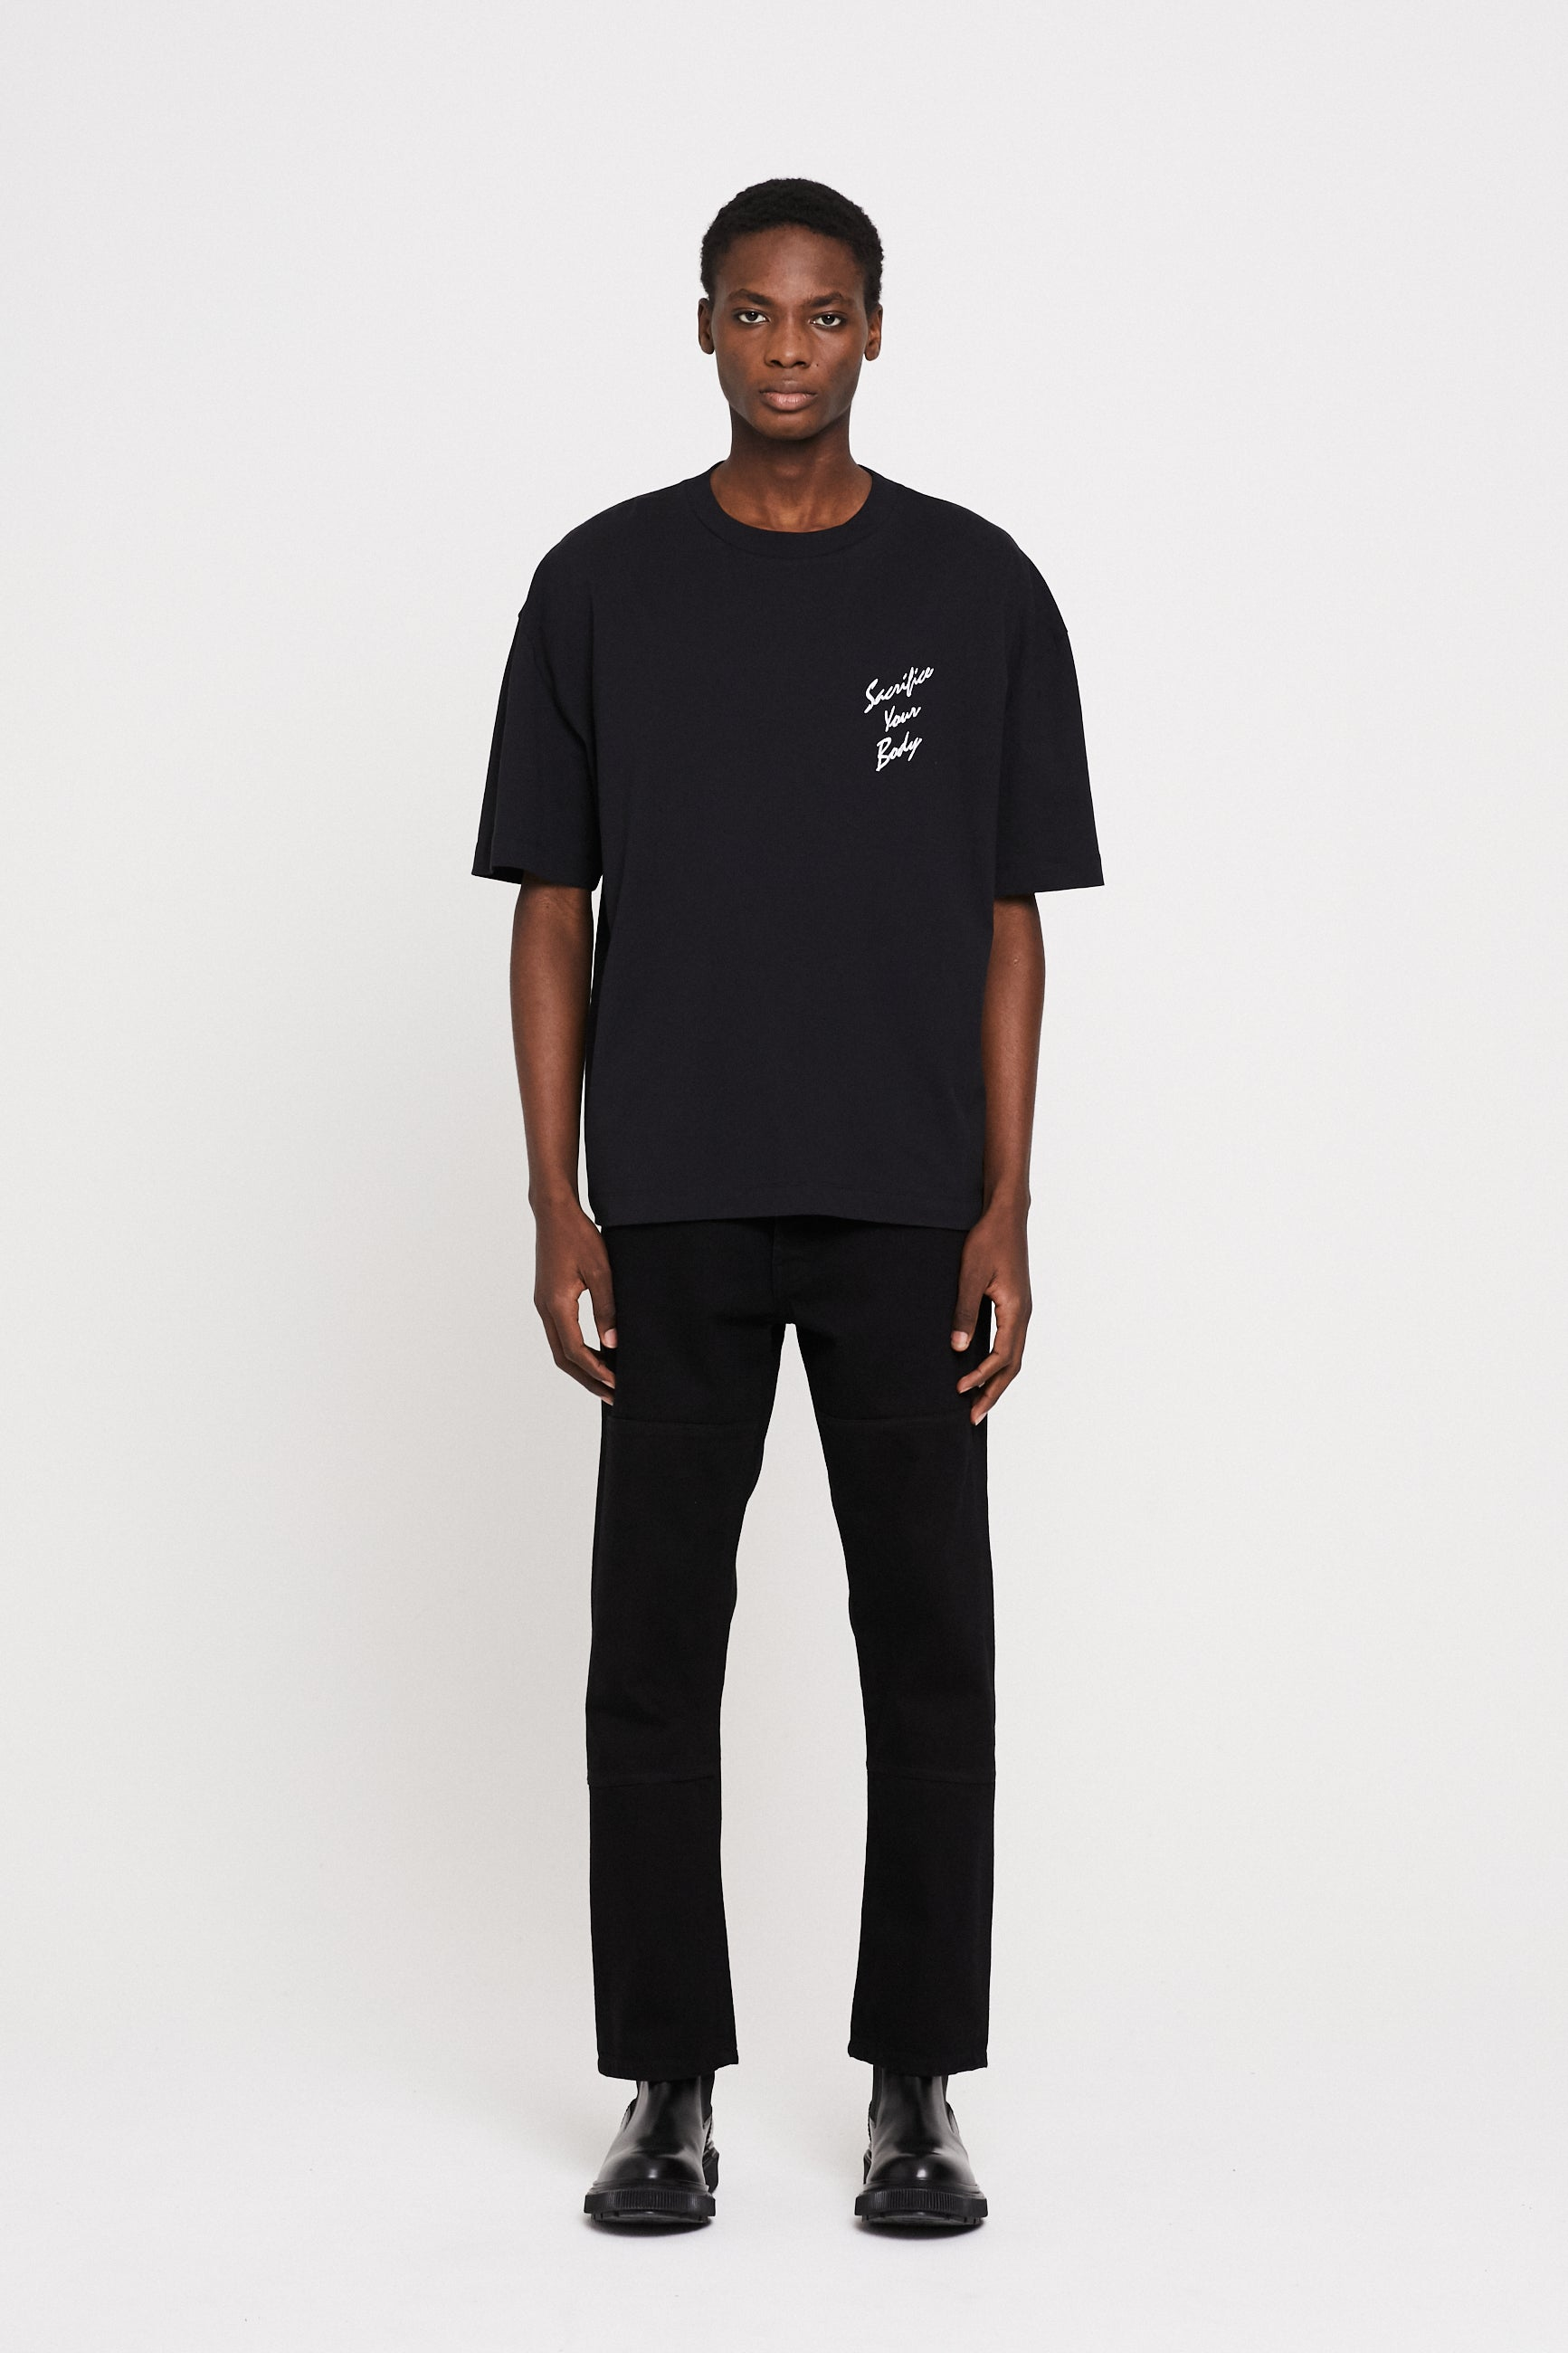 Études Spirit Sacrifice Roe Ethridge T-Shirt 1